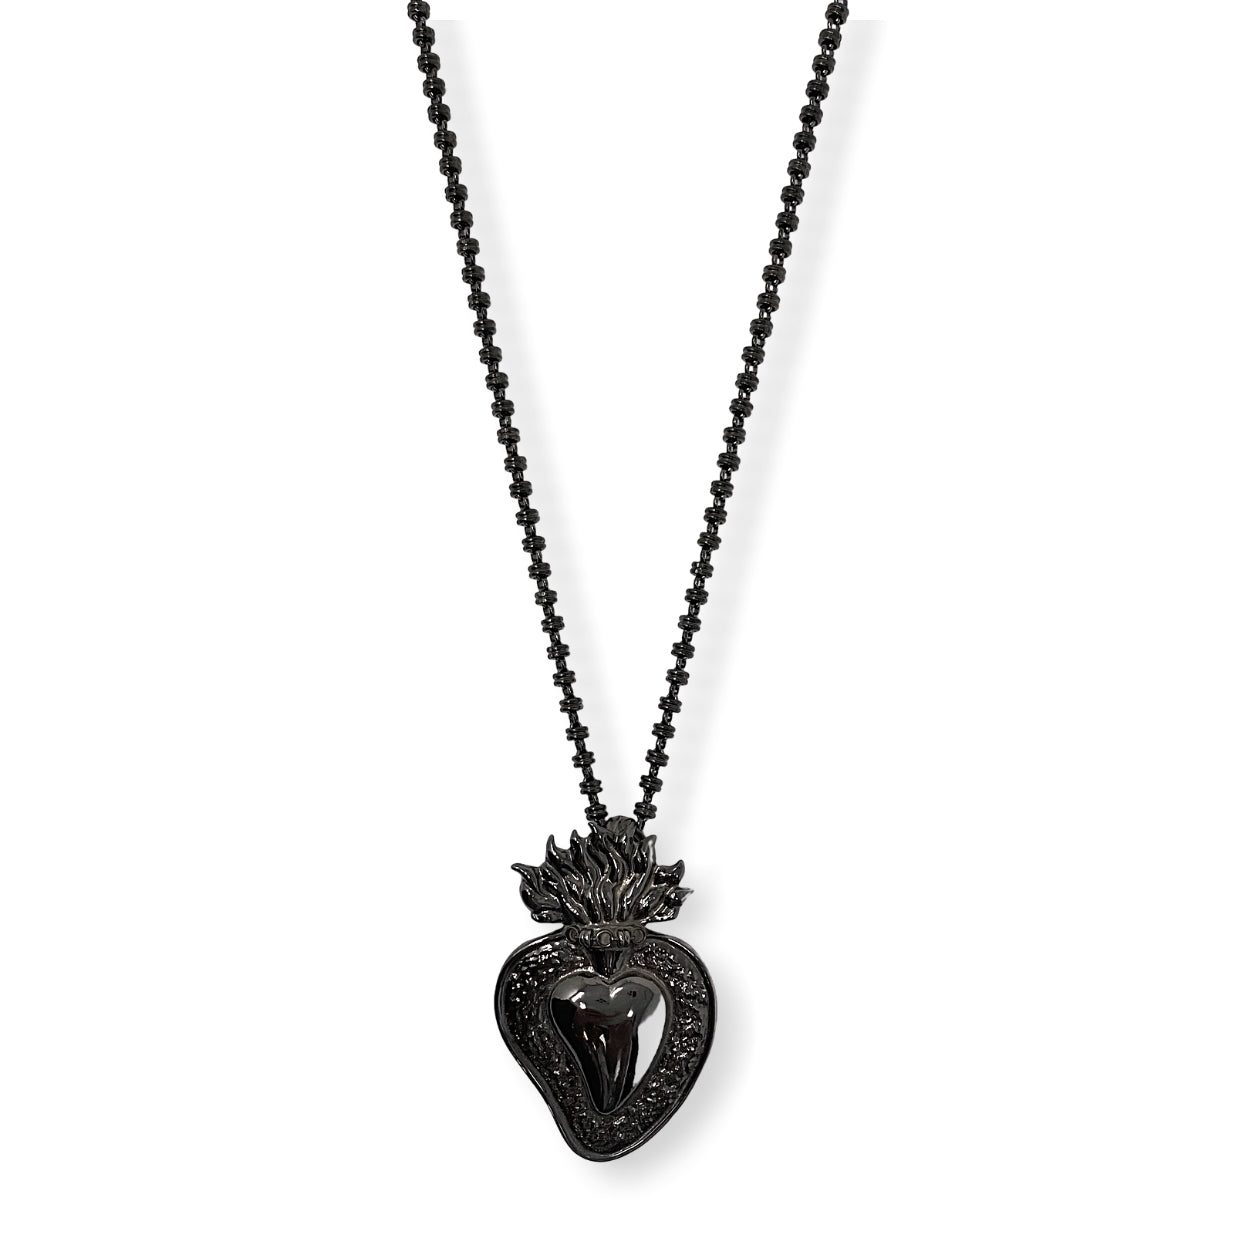 Flaming Heart Pendant in Black